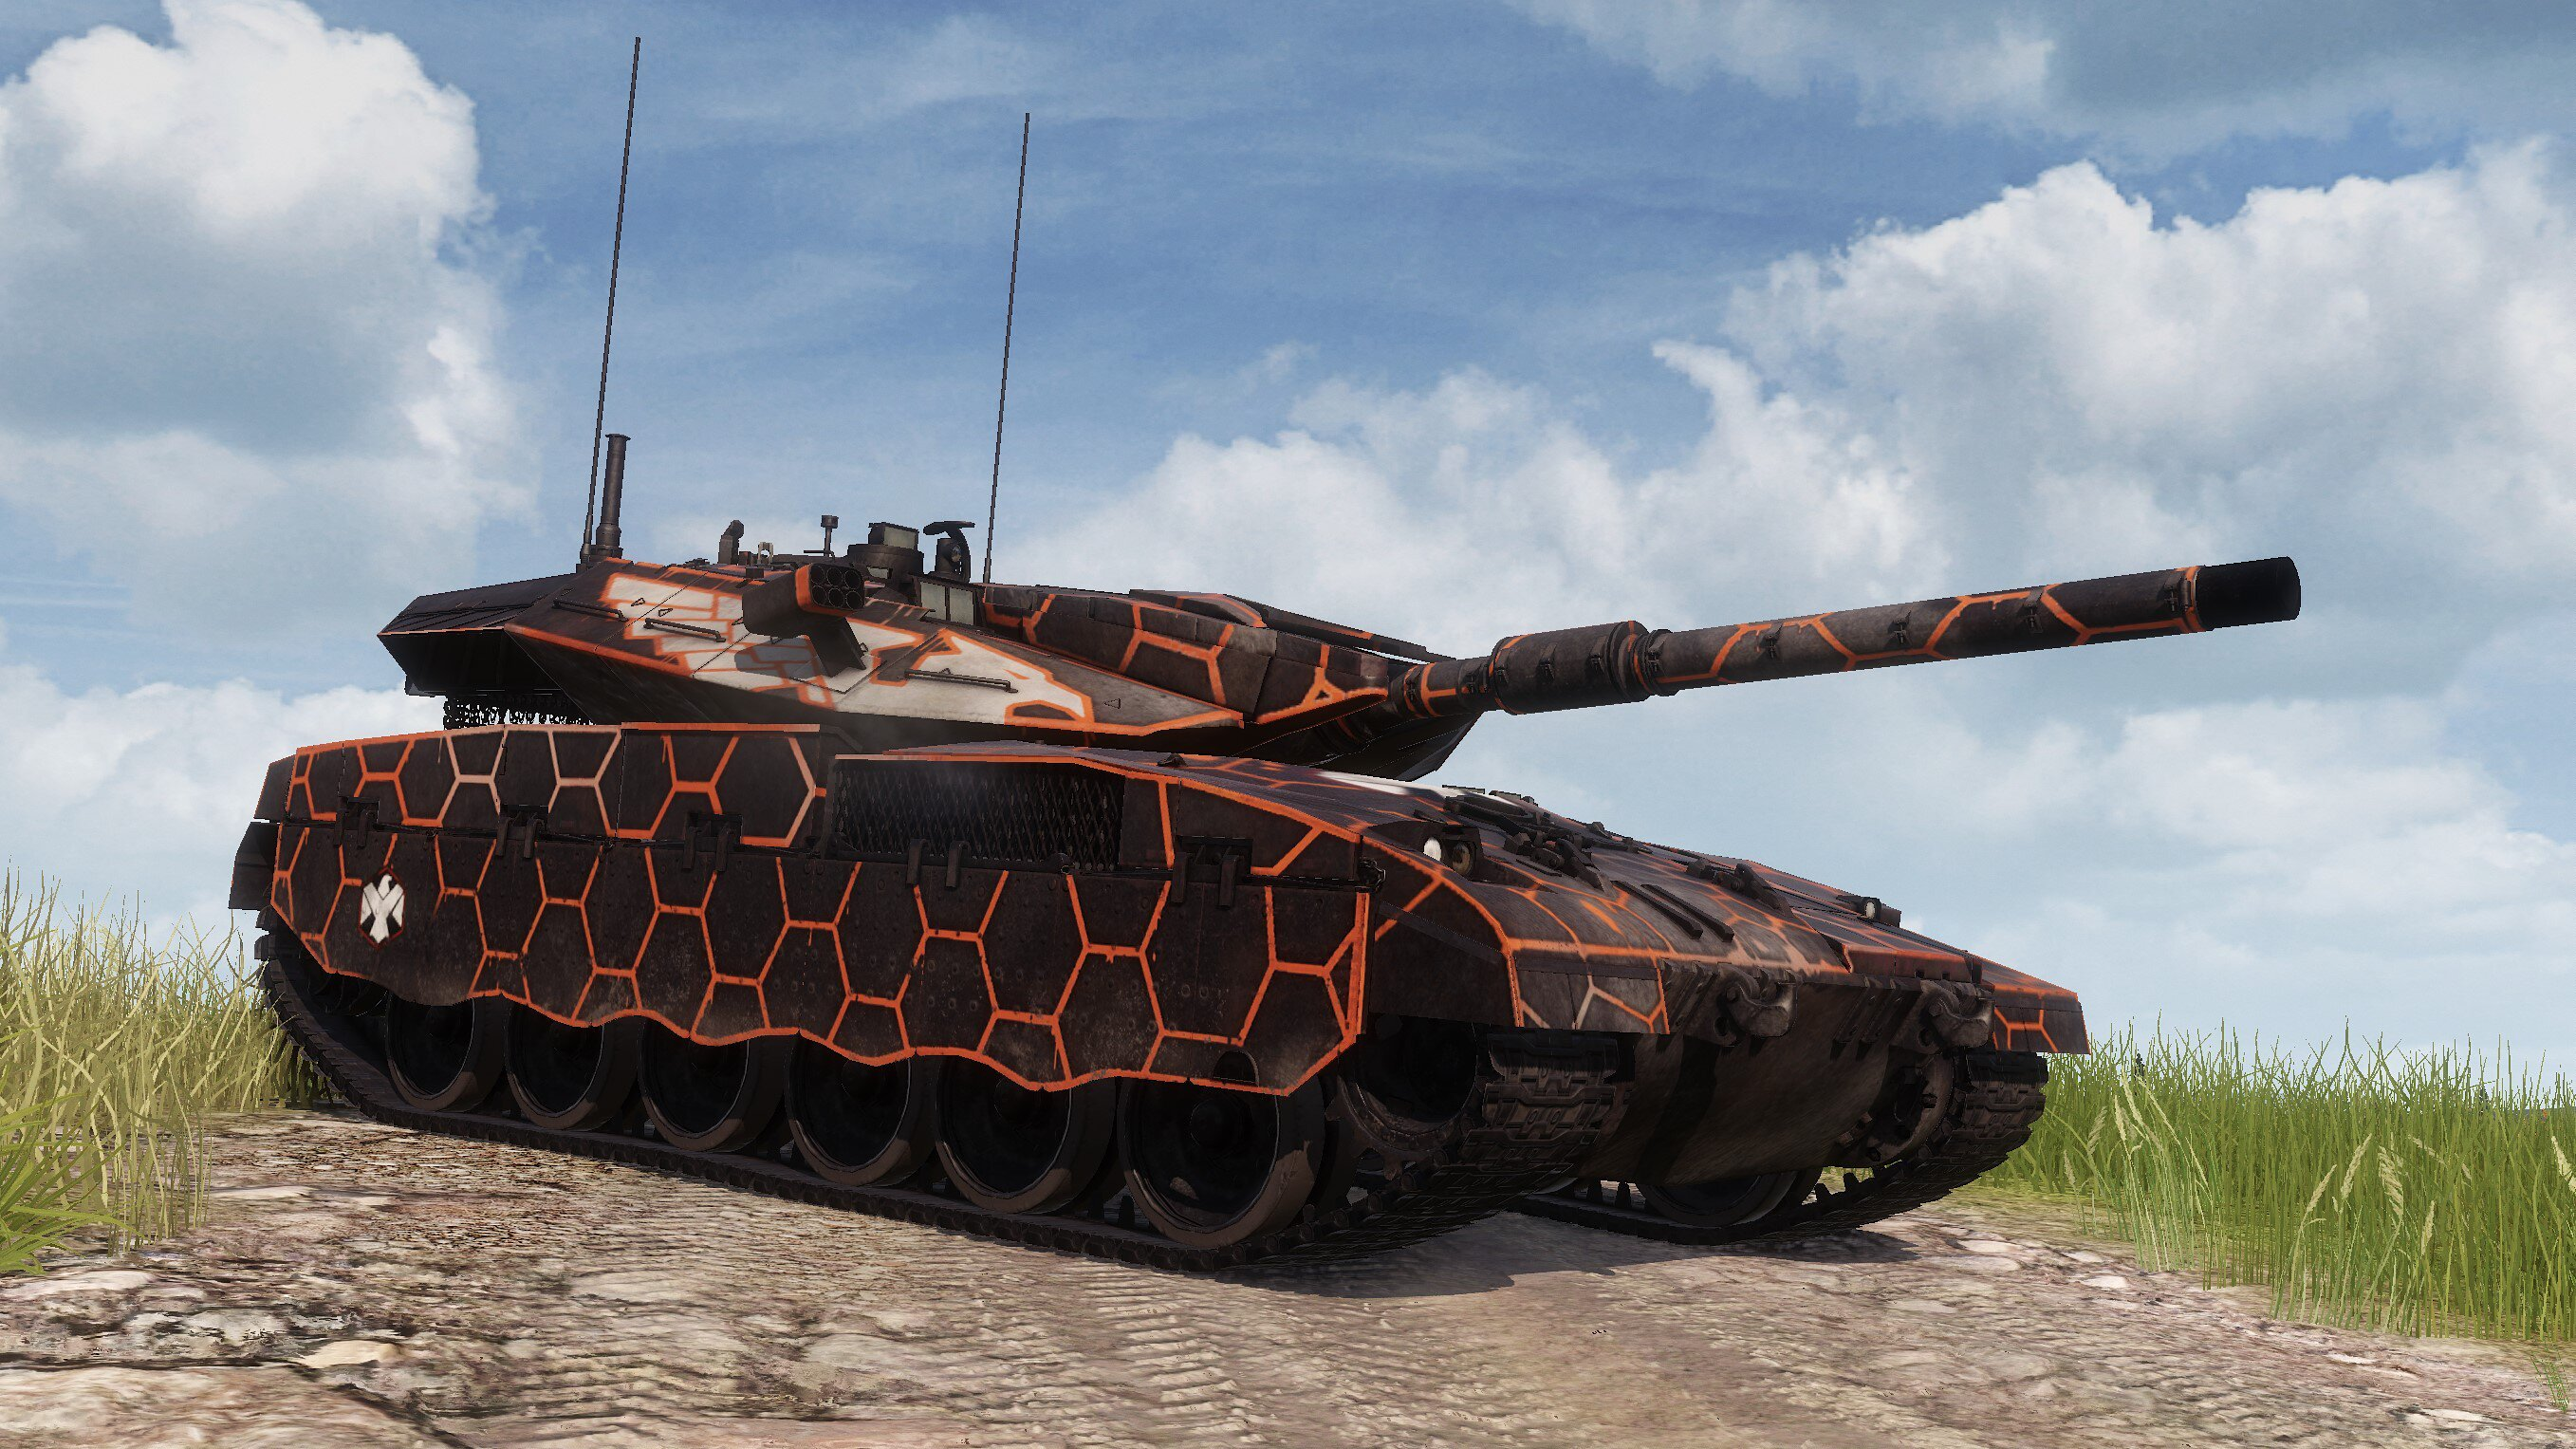 The US Army Wants a New Light Tank  Subsequent attempts to build a light tank have stalled out XM8 Armored  the light tank of the future could easily punch above its weight by using a